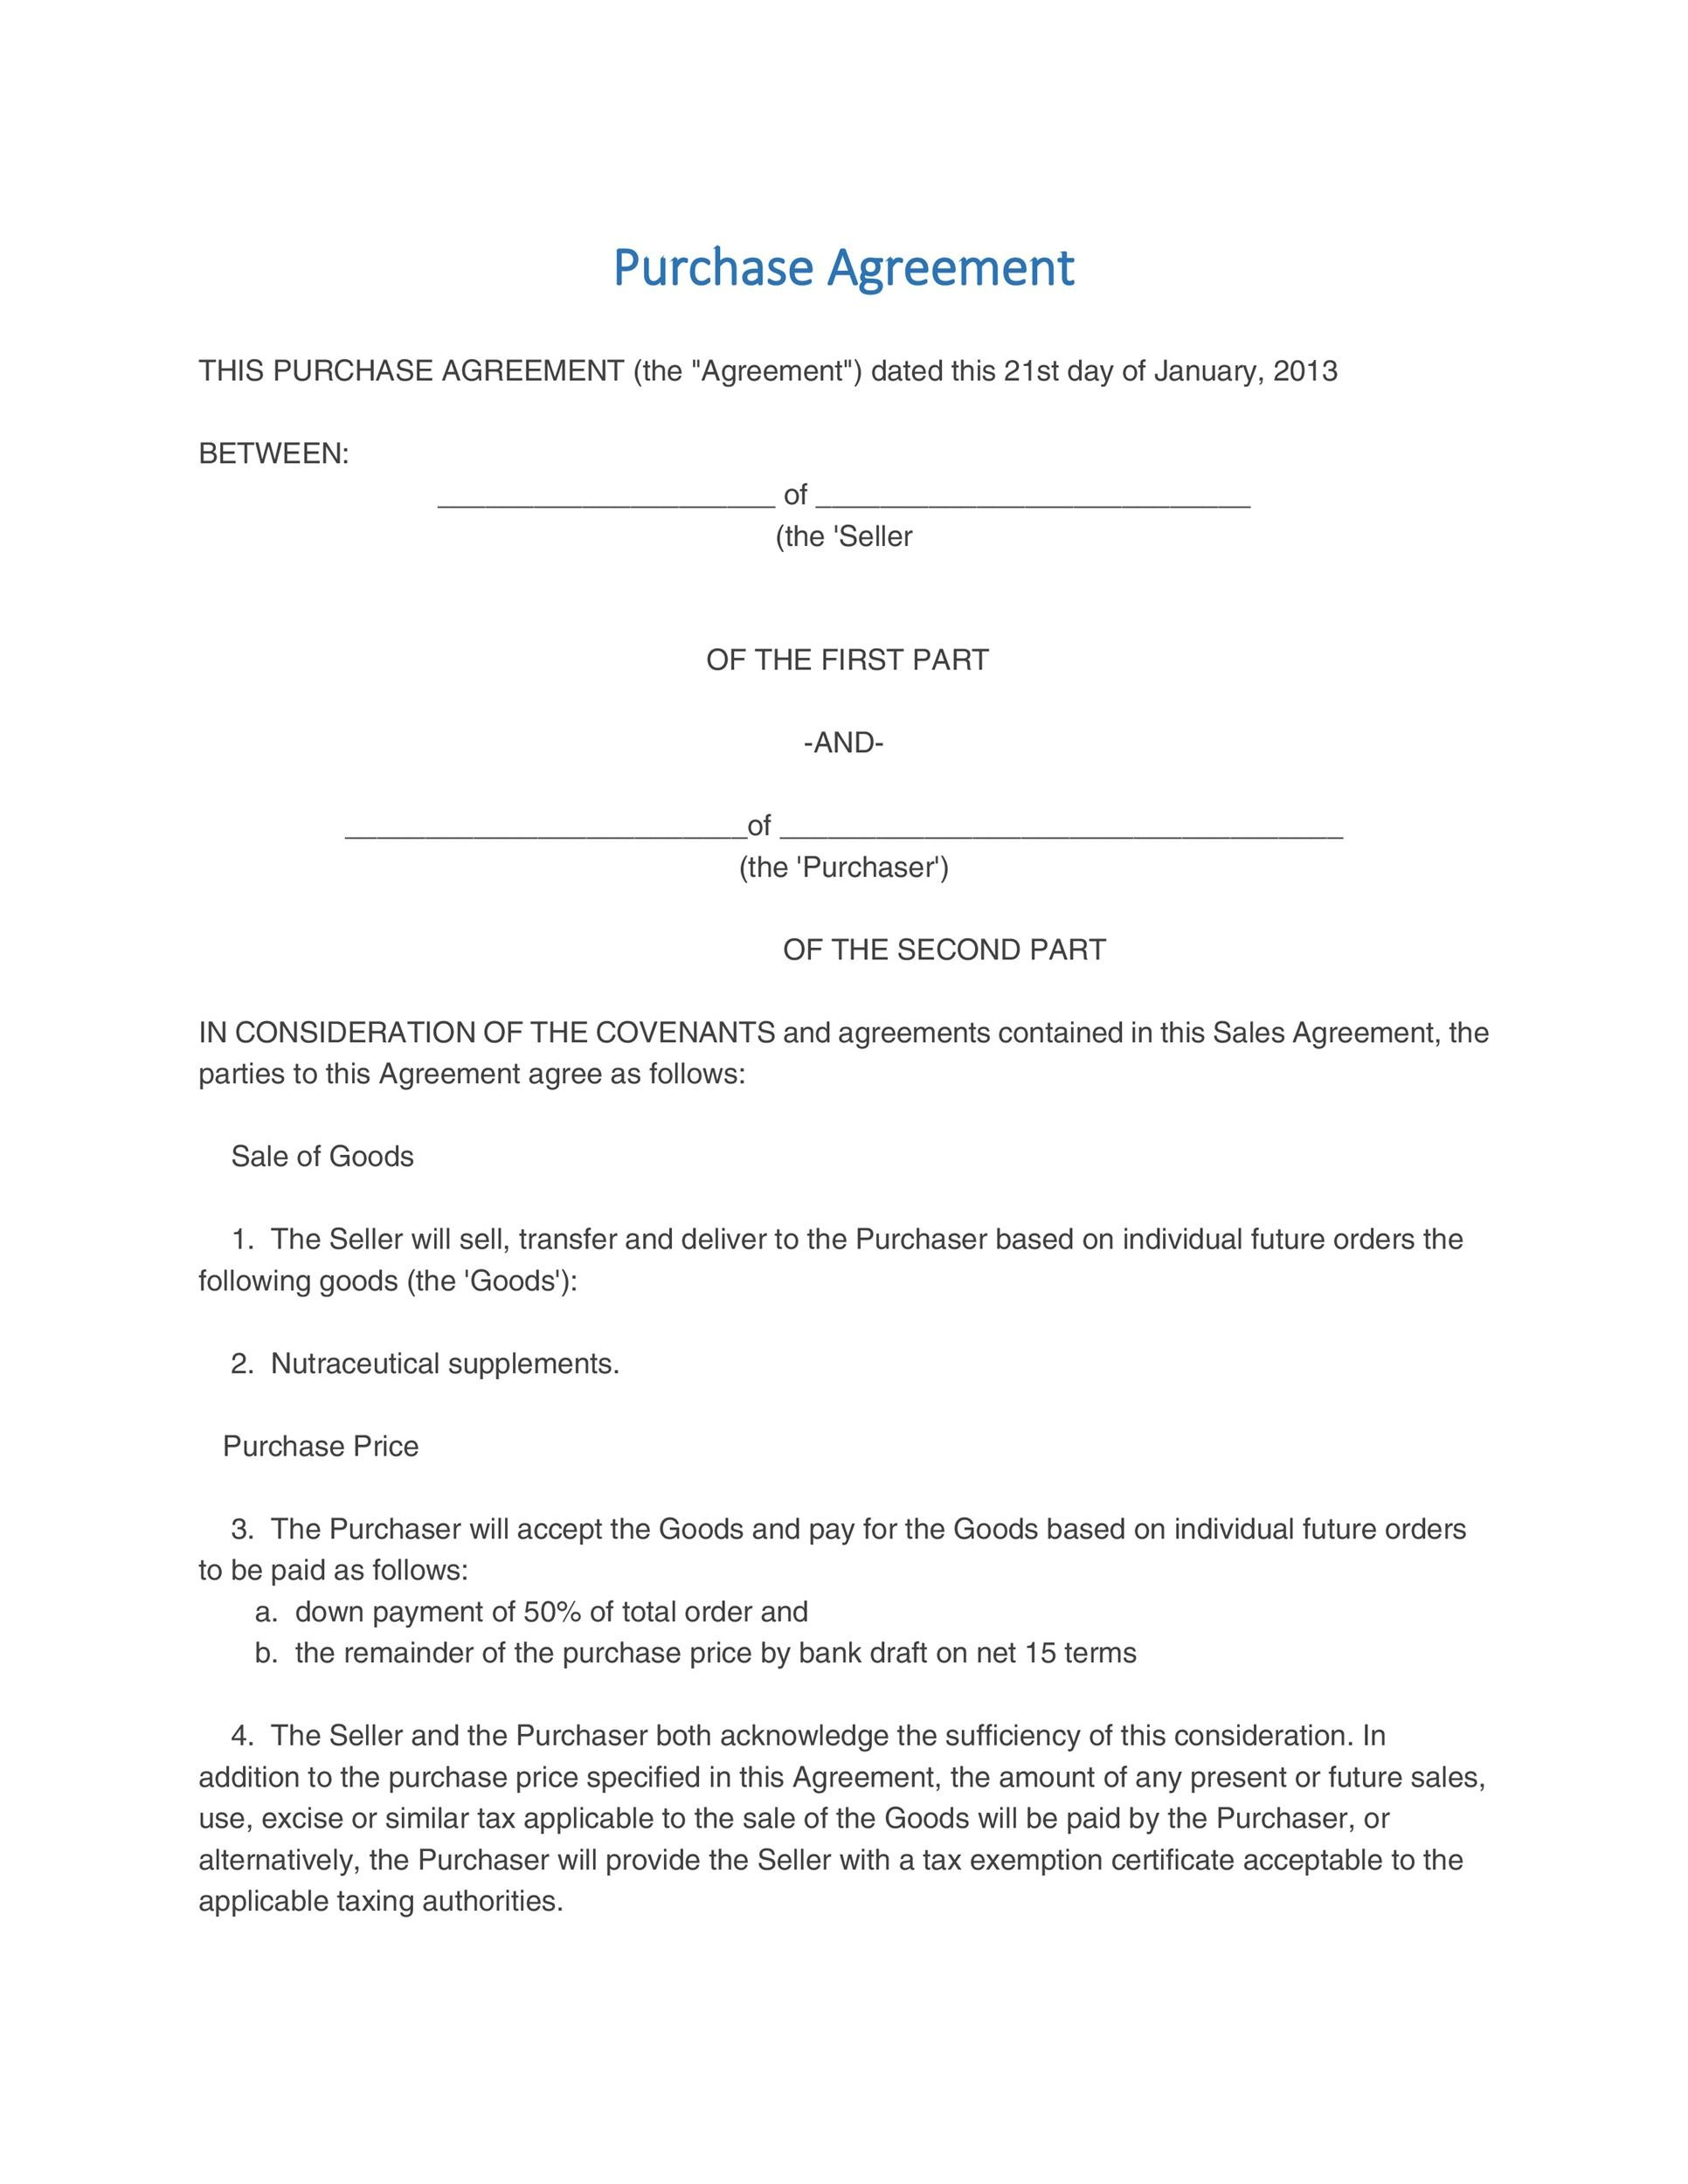 Exceptional Printable Purchase Agreement Template 03  Printable Purchase Agreement